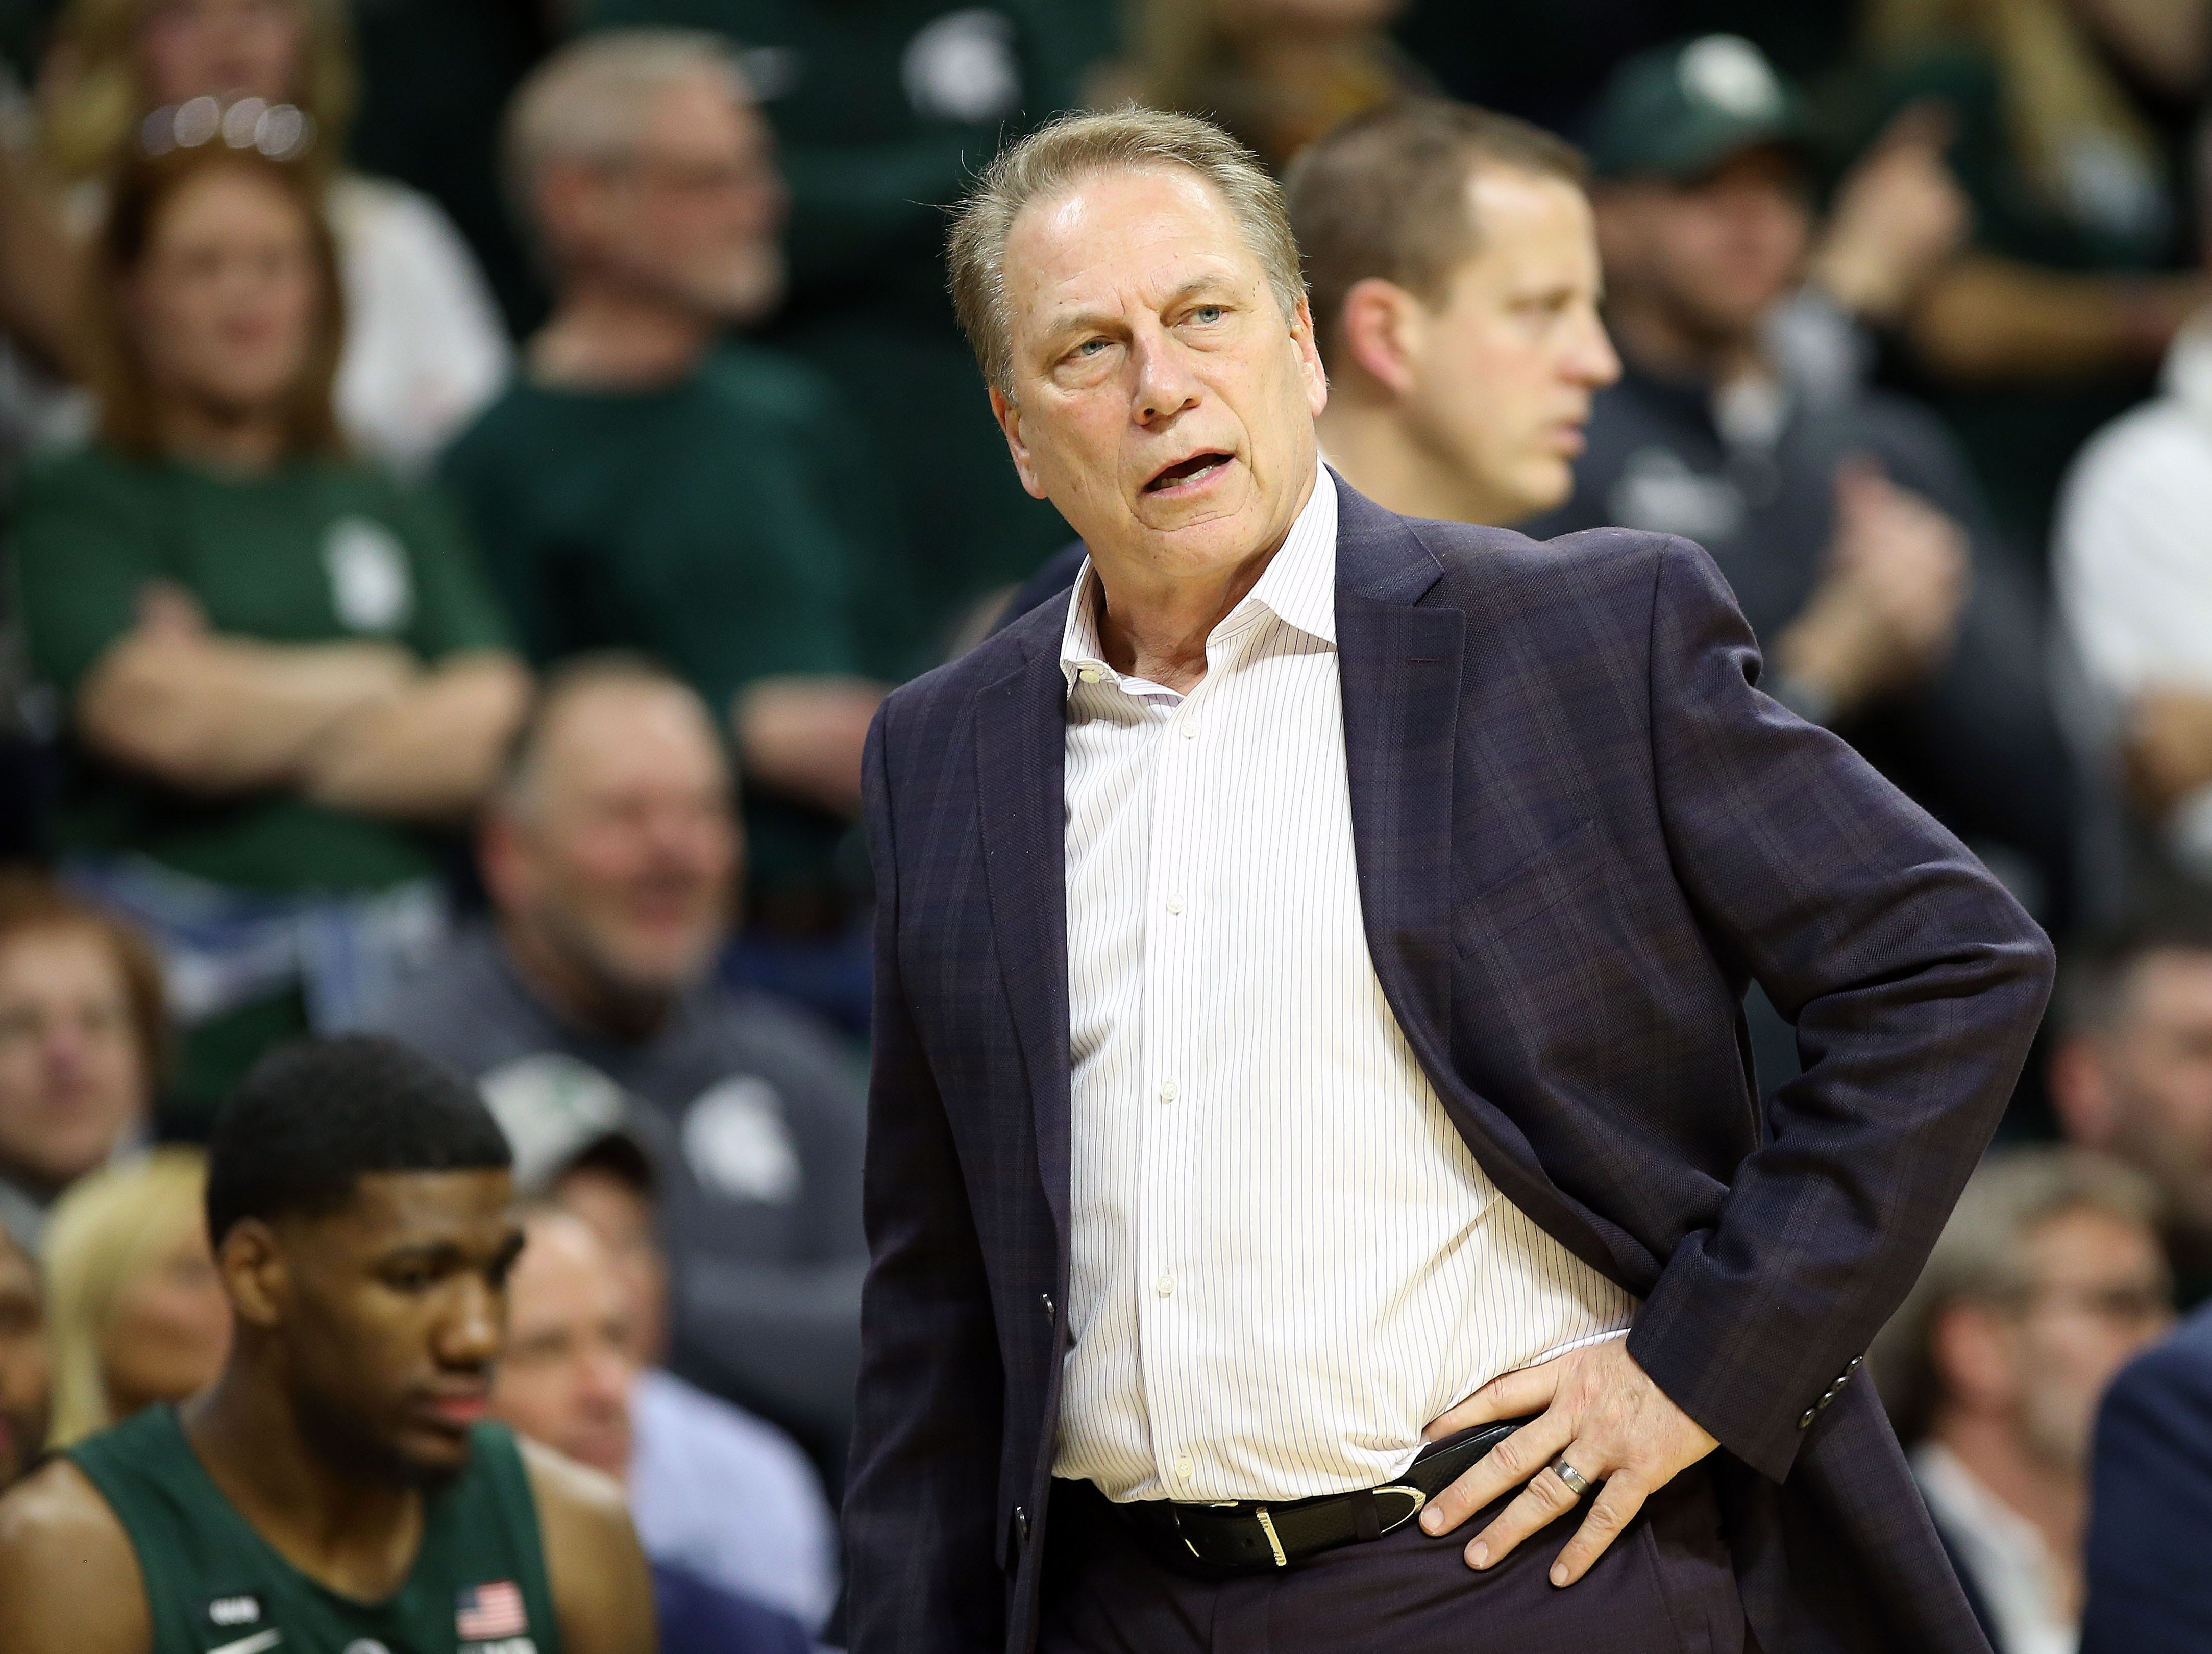 Mar 5, 2019; East Lansing, MI, USA; Michigan State Spartans head coach Tom Izzo reacts during the first half of a game against the Nebraska Cornhuskers at the Breslin Center. Mandatory Credit: Mike Carter-USA TODAY Sports